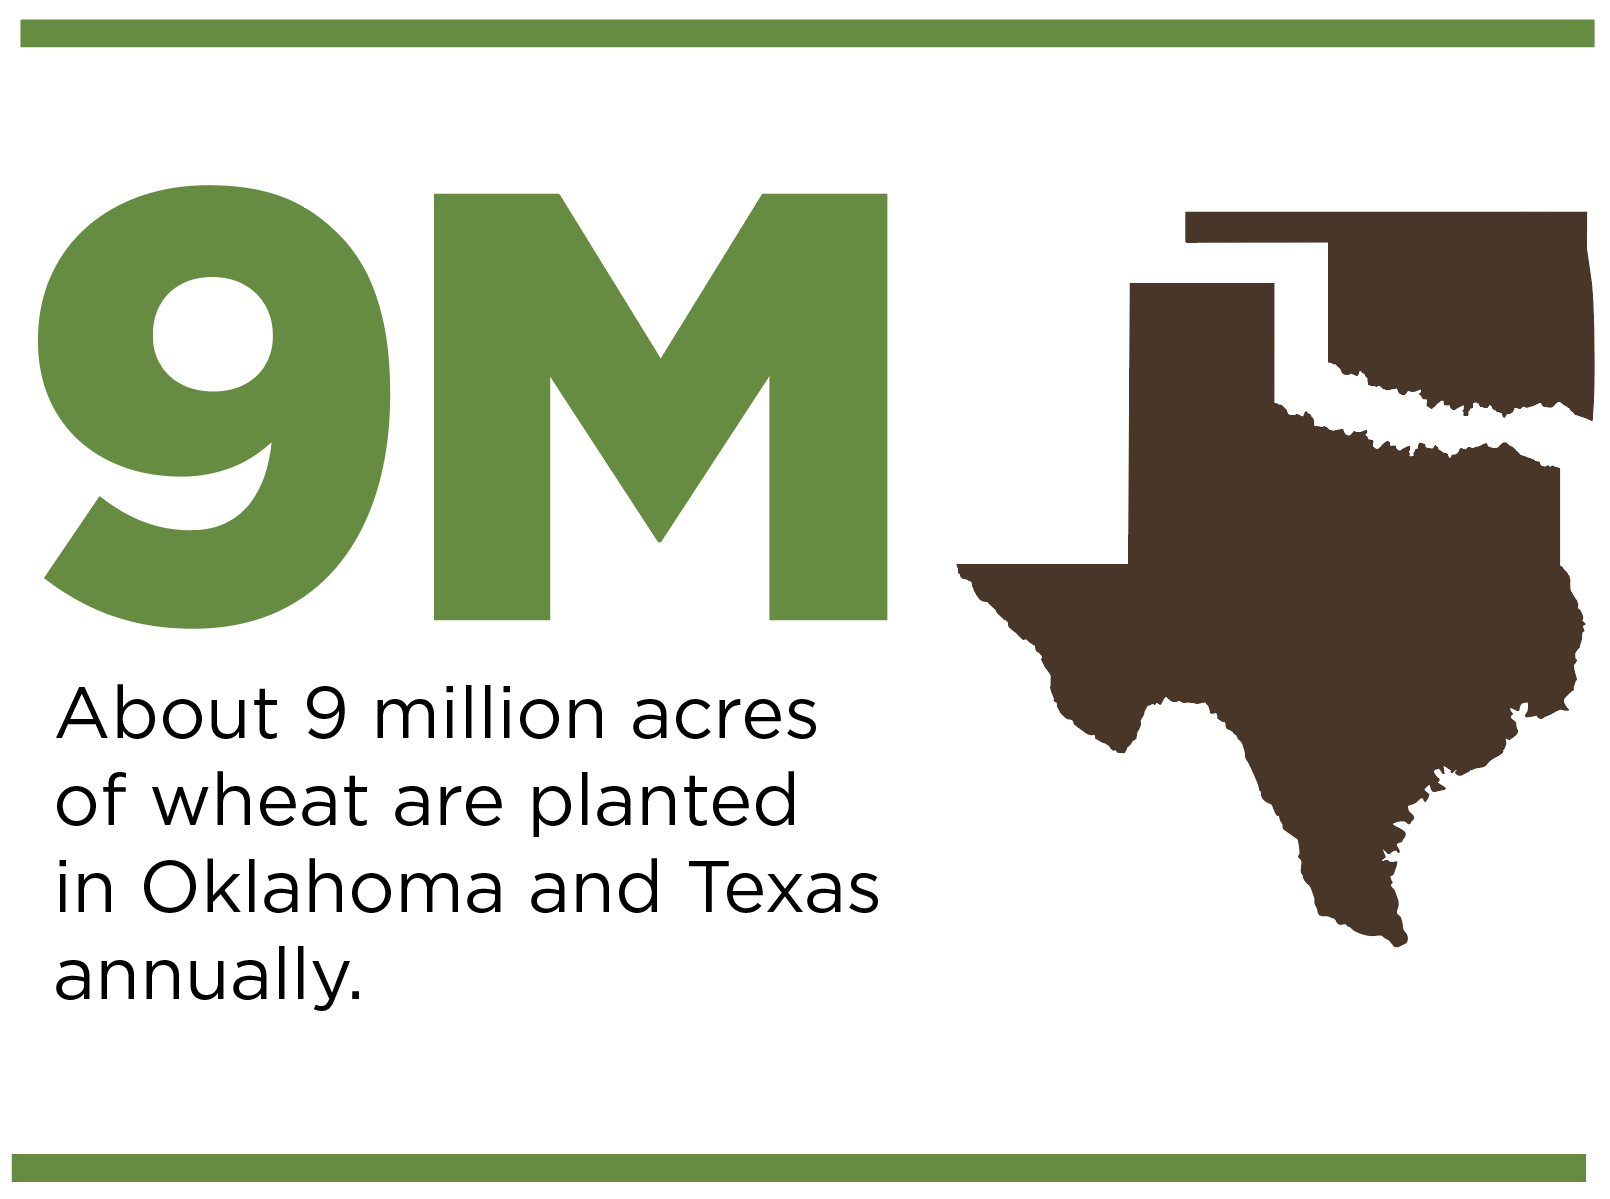 About 9 million acres of wheat are planted in Oklahoma and Texas annually.